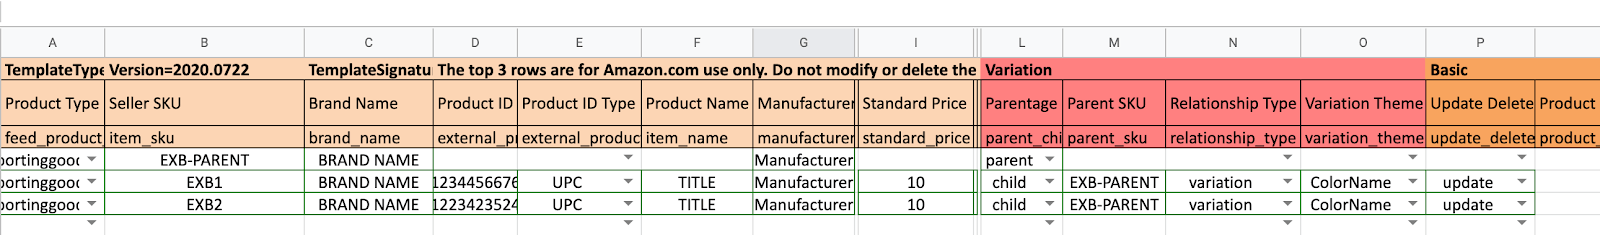 Amazon product listing variations: spreadsheet